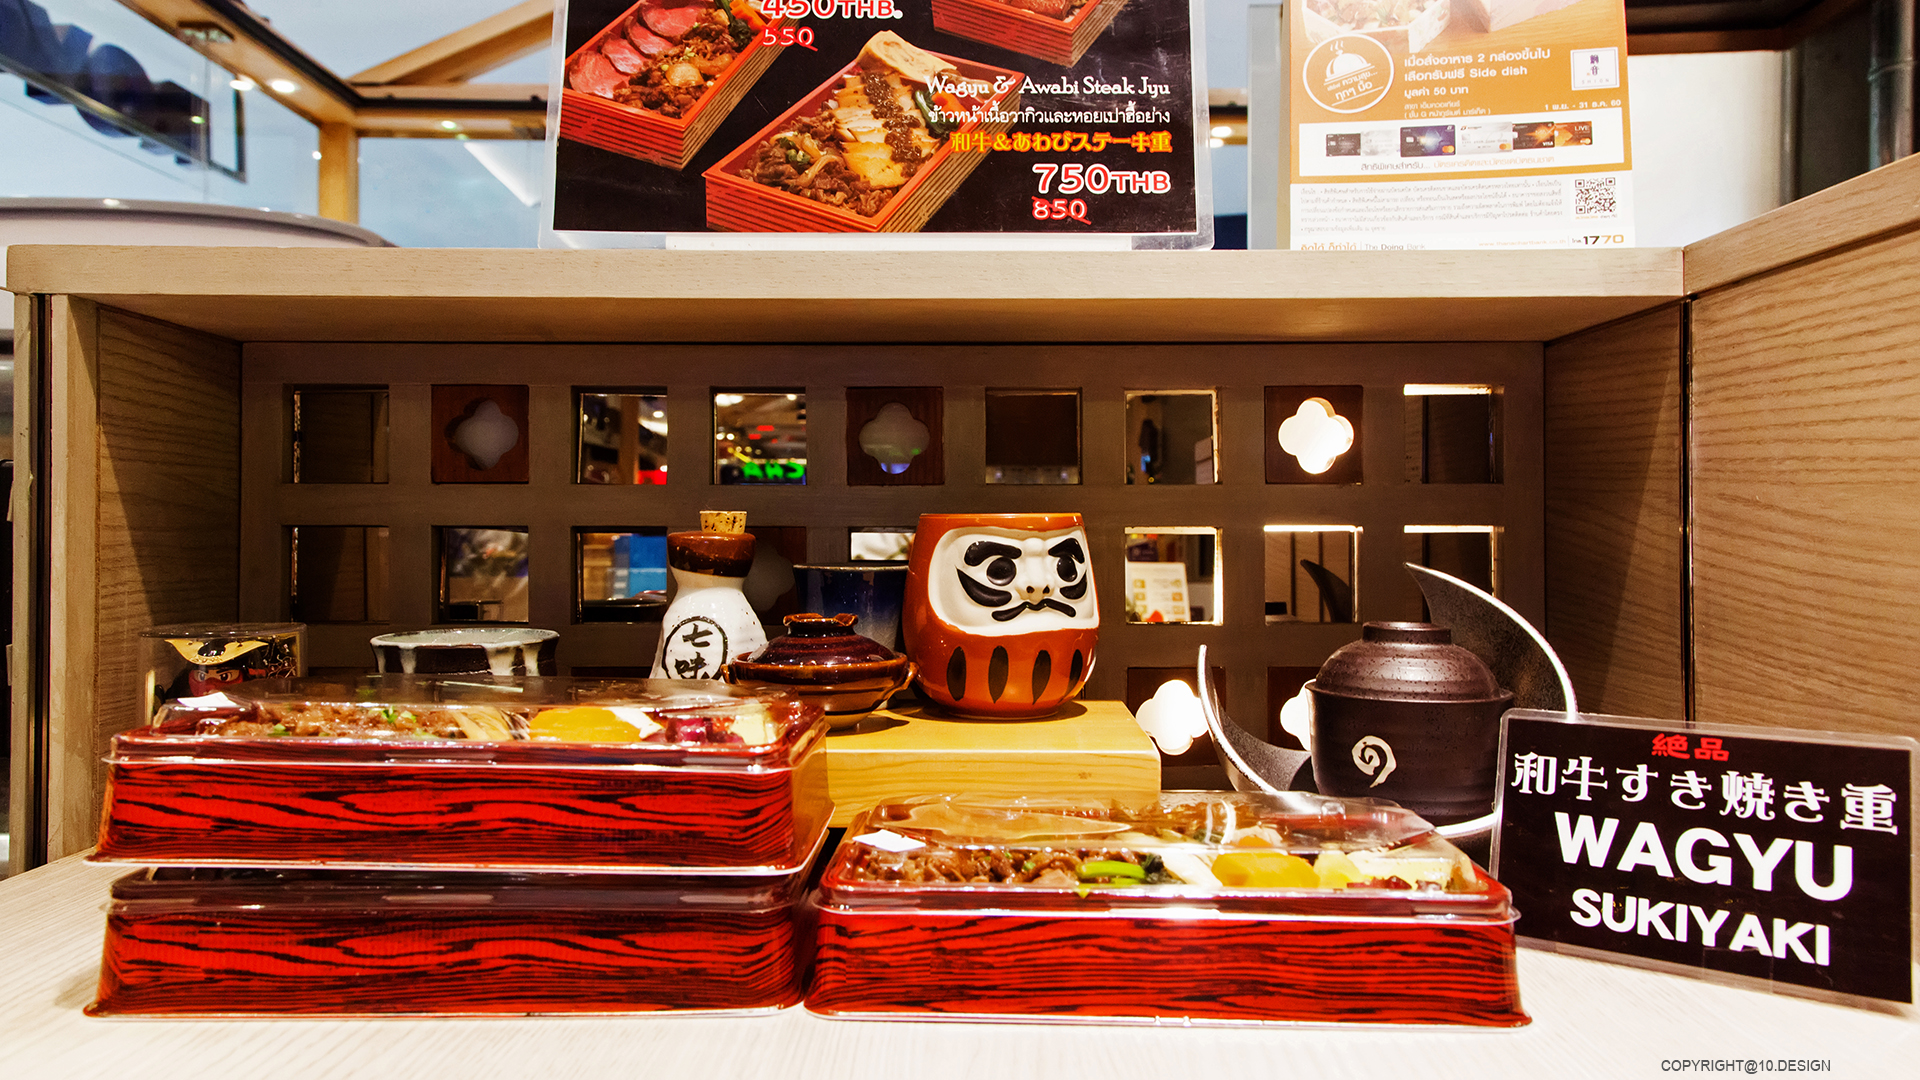 10 design shion sushi bar japanese booth takeaway interior emquartier bangkok restaurant 01